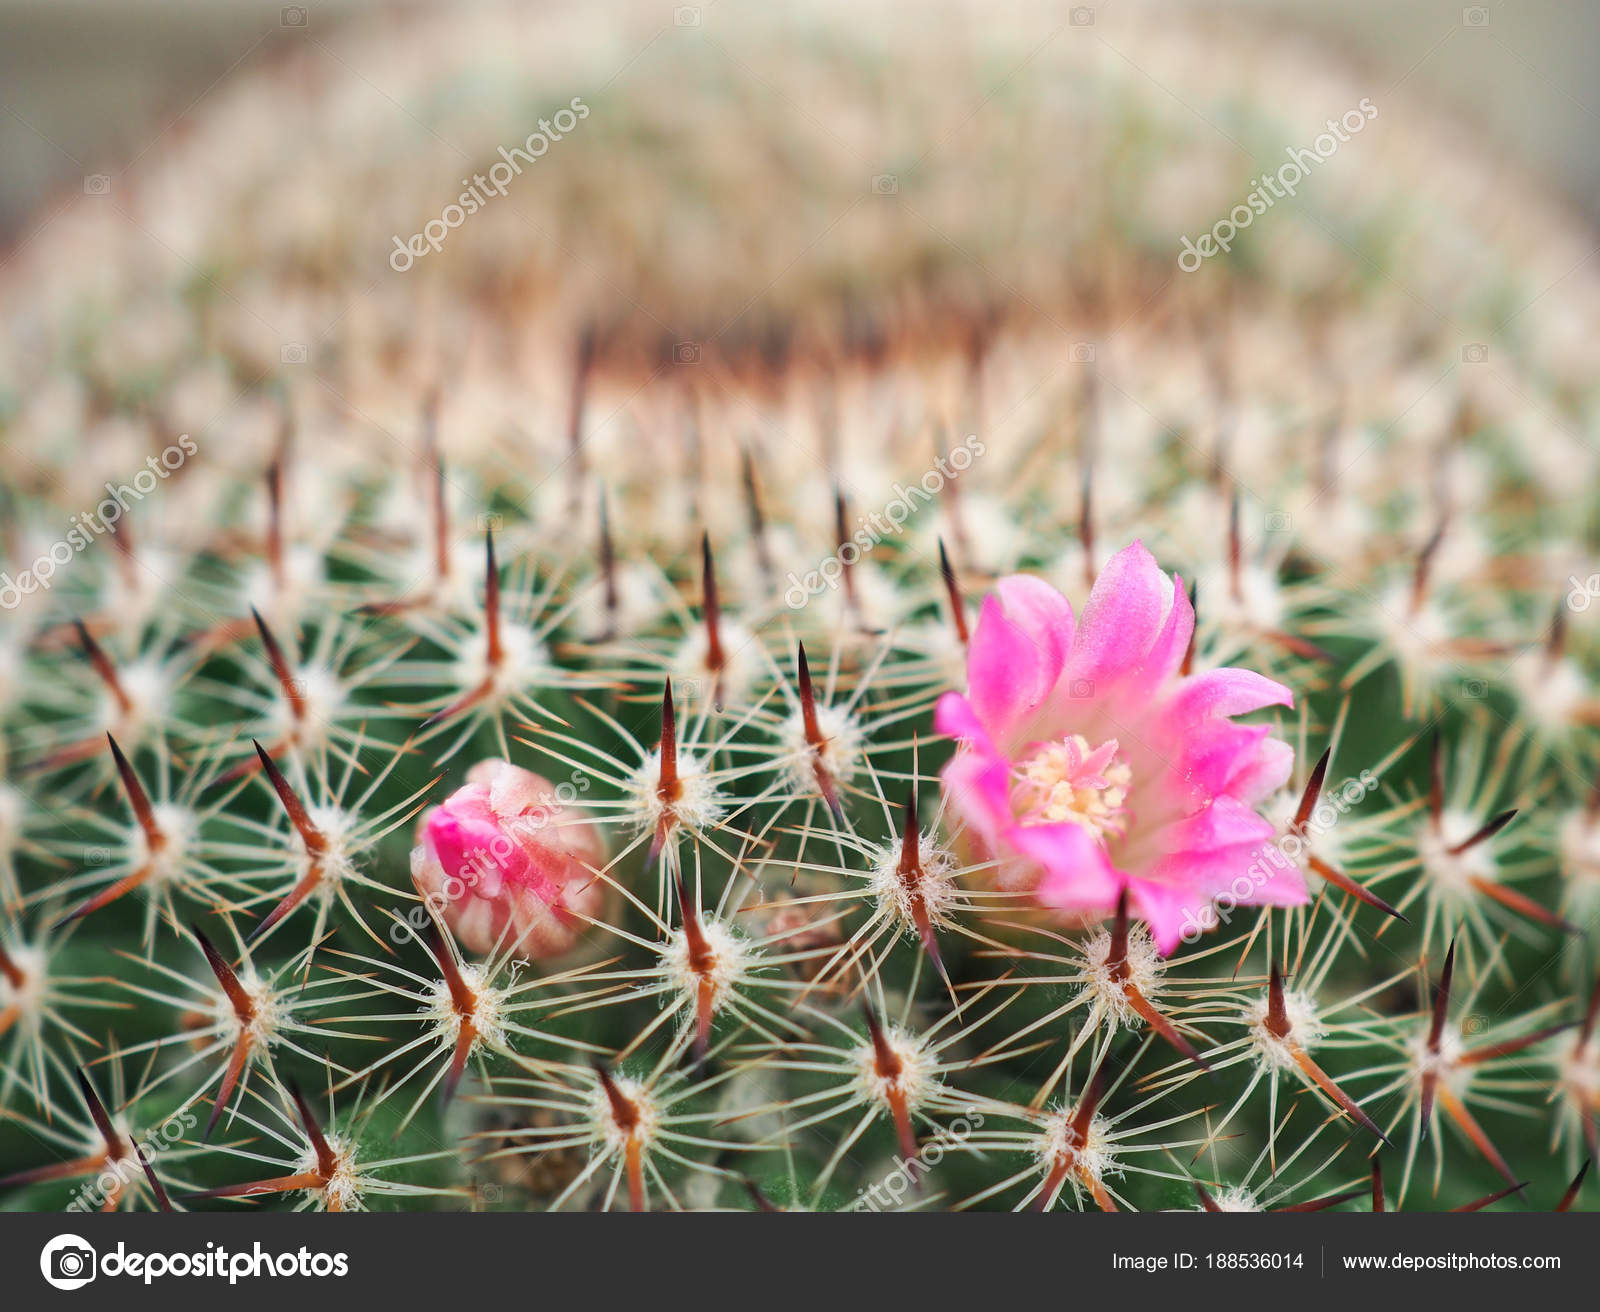 Beautiful Pink Flower Of Cactus In The Small Pot Plant For Dec